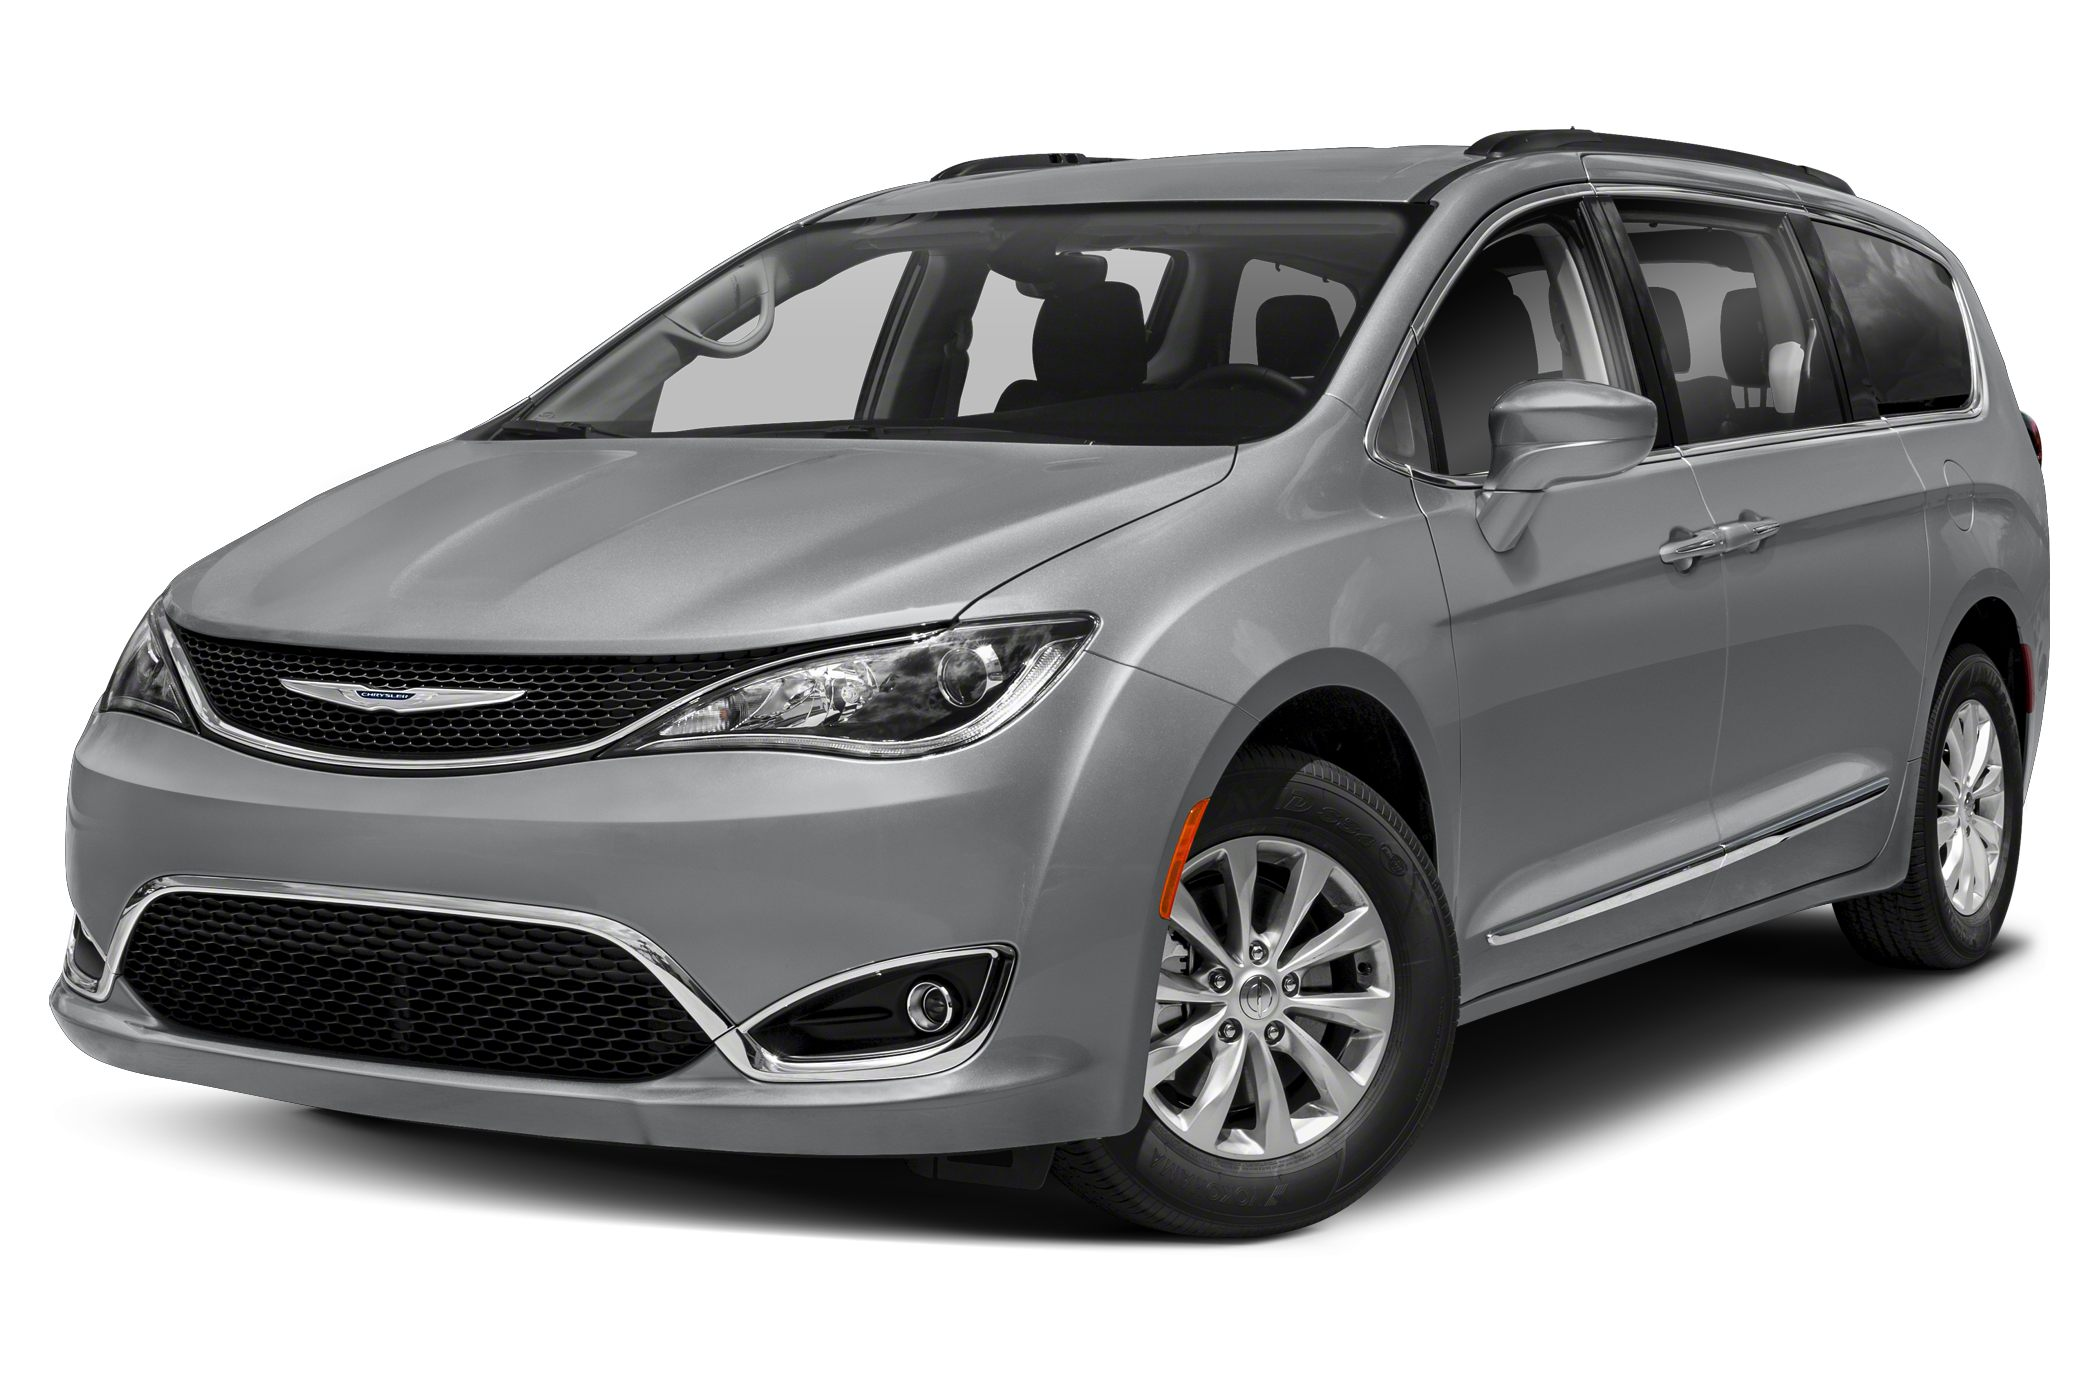 2017 chrysler pacifica vs 2018 honda odyssey casa chrysler for Chrysler pacifica vs honda odyssey